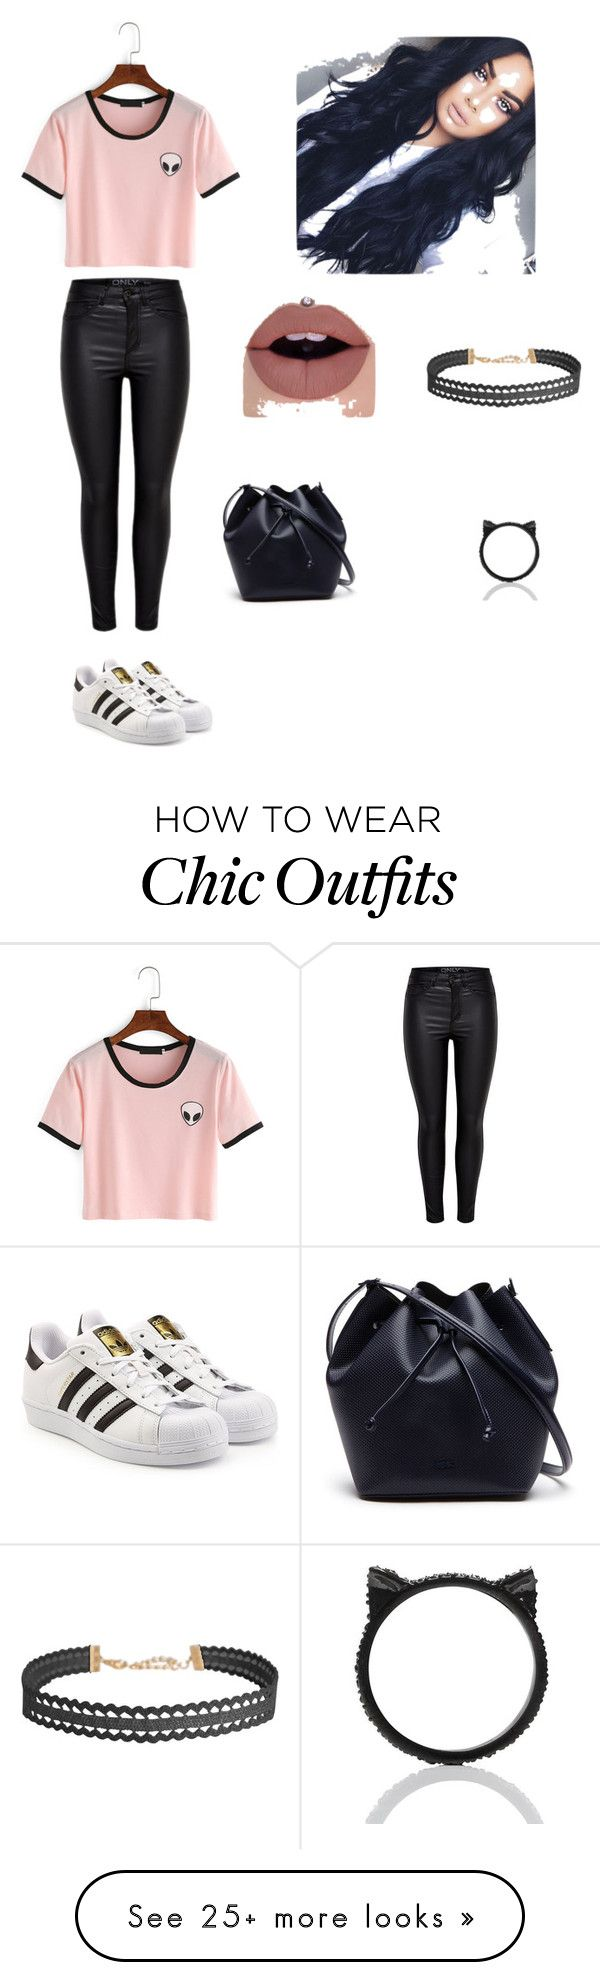 The Adidas Tee is a Street Style Must